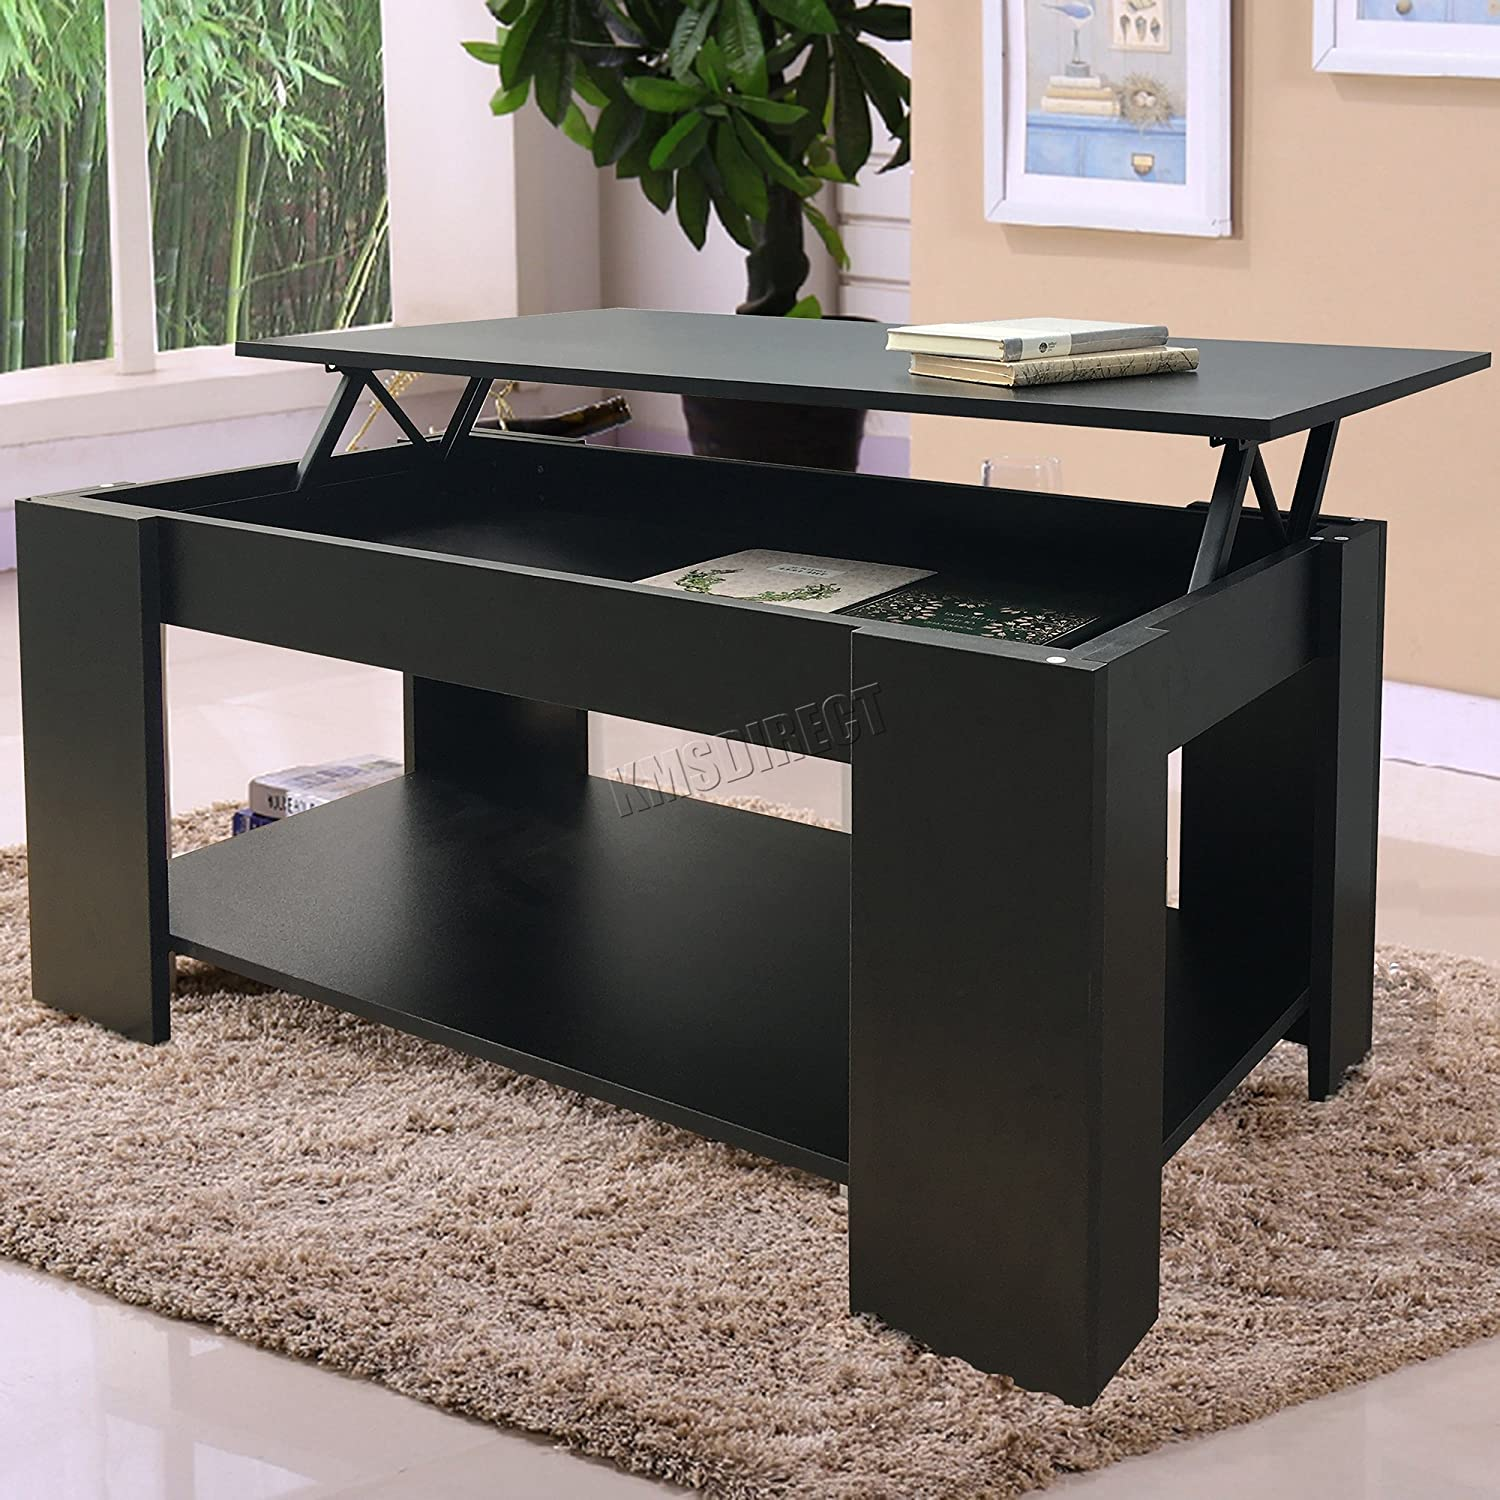 - FoxHunter Lift Up Top Coffee Table With Storage And Shelf Living